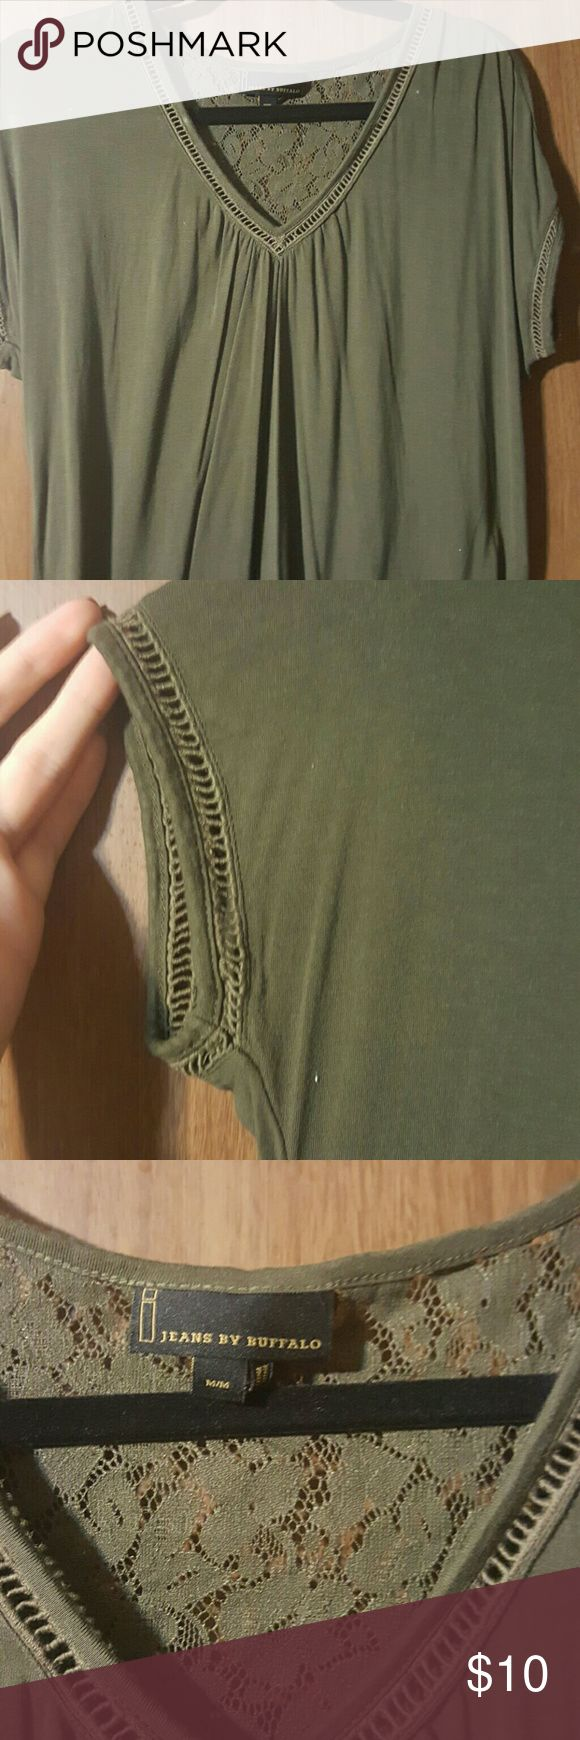 V-neck Army Green Shirt with Lace Detailing Very cute army green top with lace detailing. From a clean smoke free home. Jeans by Buffalo Tops Blouses